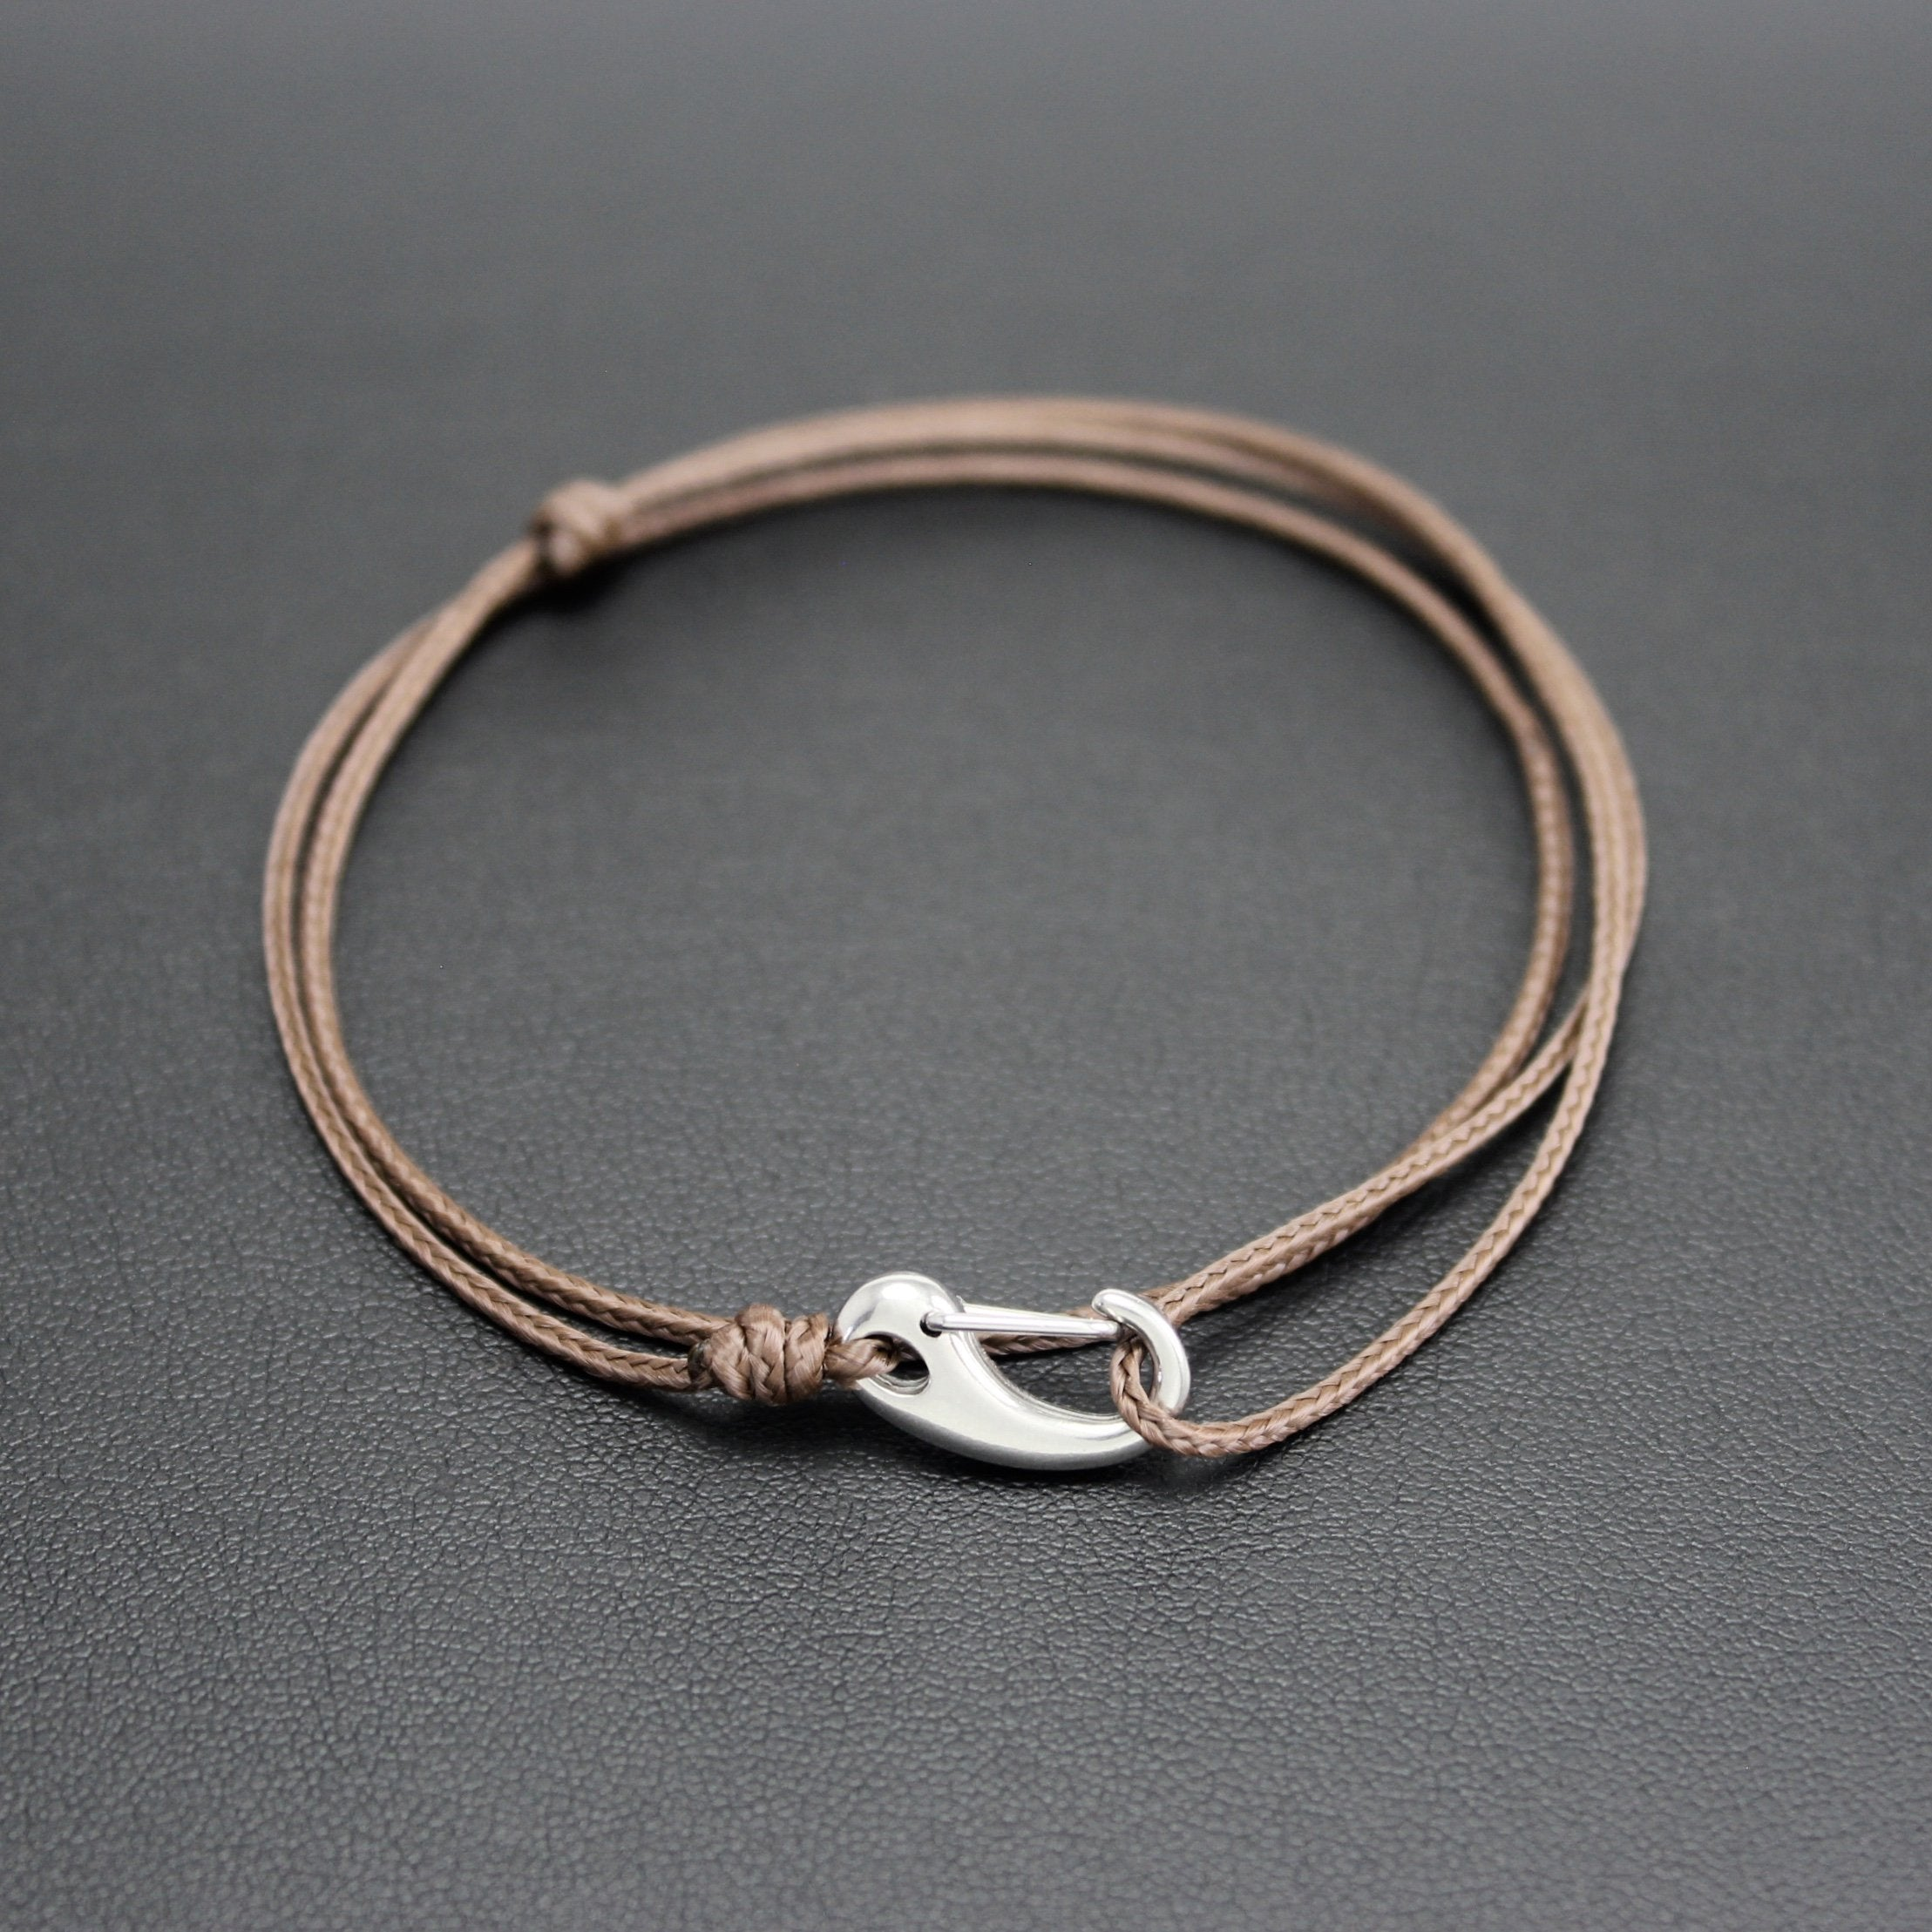 Men's Micro Cord Adjustable Bracelet in Brown